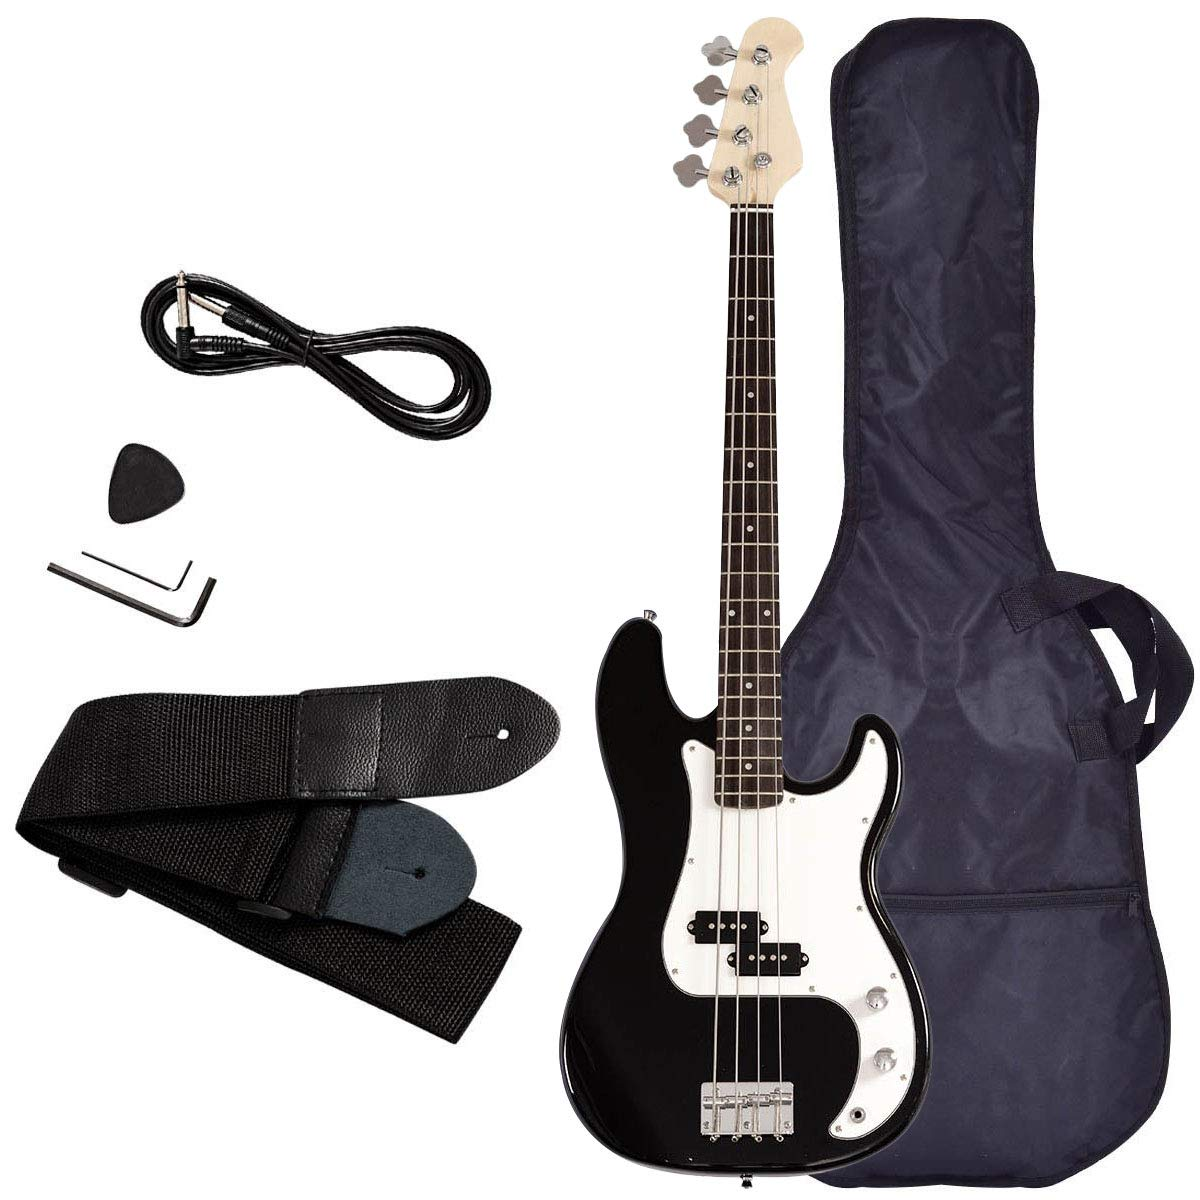 Electric Bass Guitar, Safeplus Starters Acoustic Guitar Full Size 4 String Package with Guitar Bag, Strap, Guitar pick, Amp cord by Safeplus